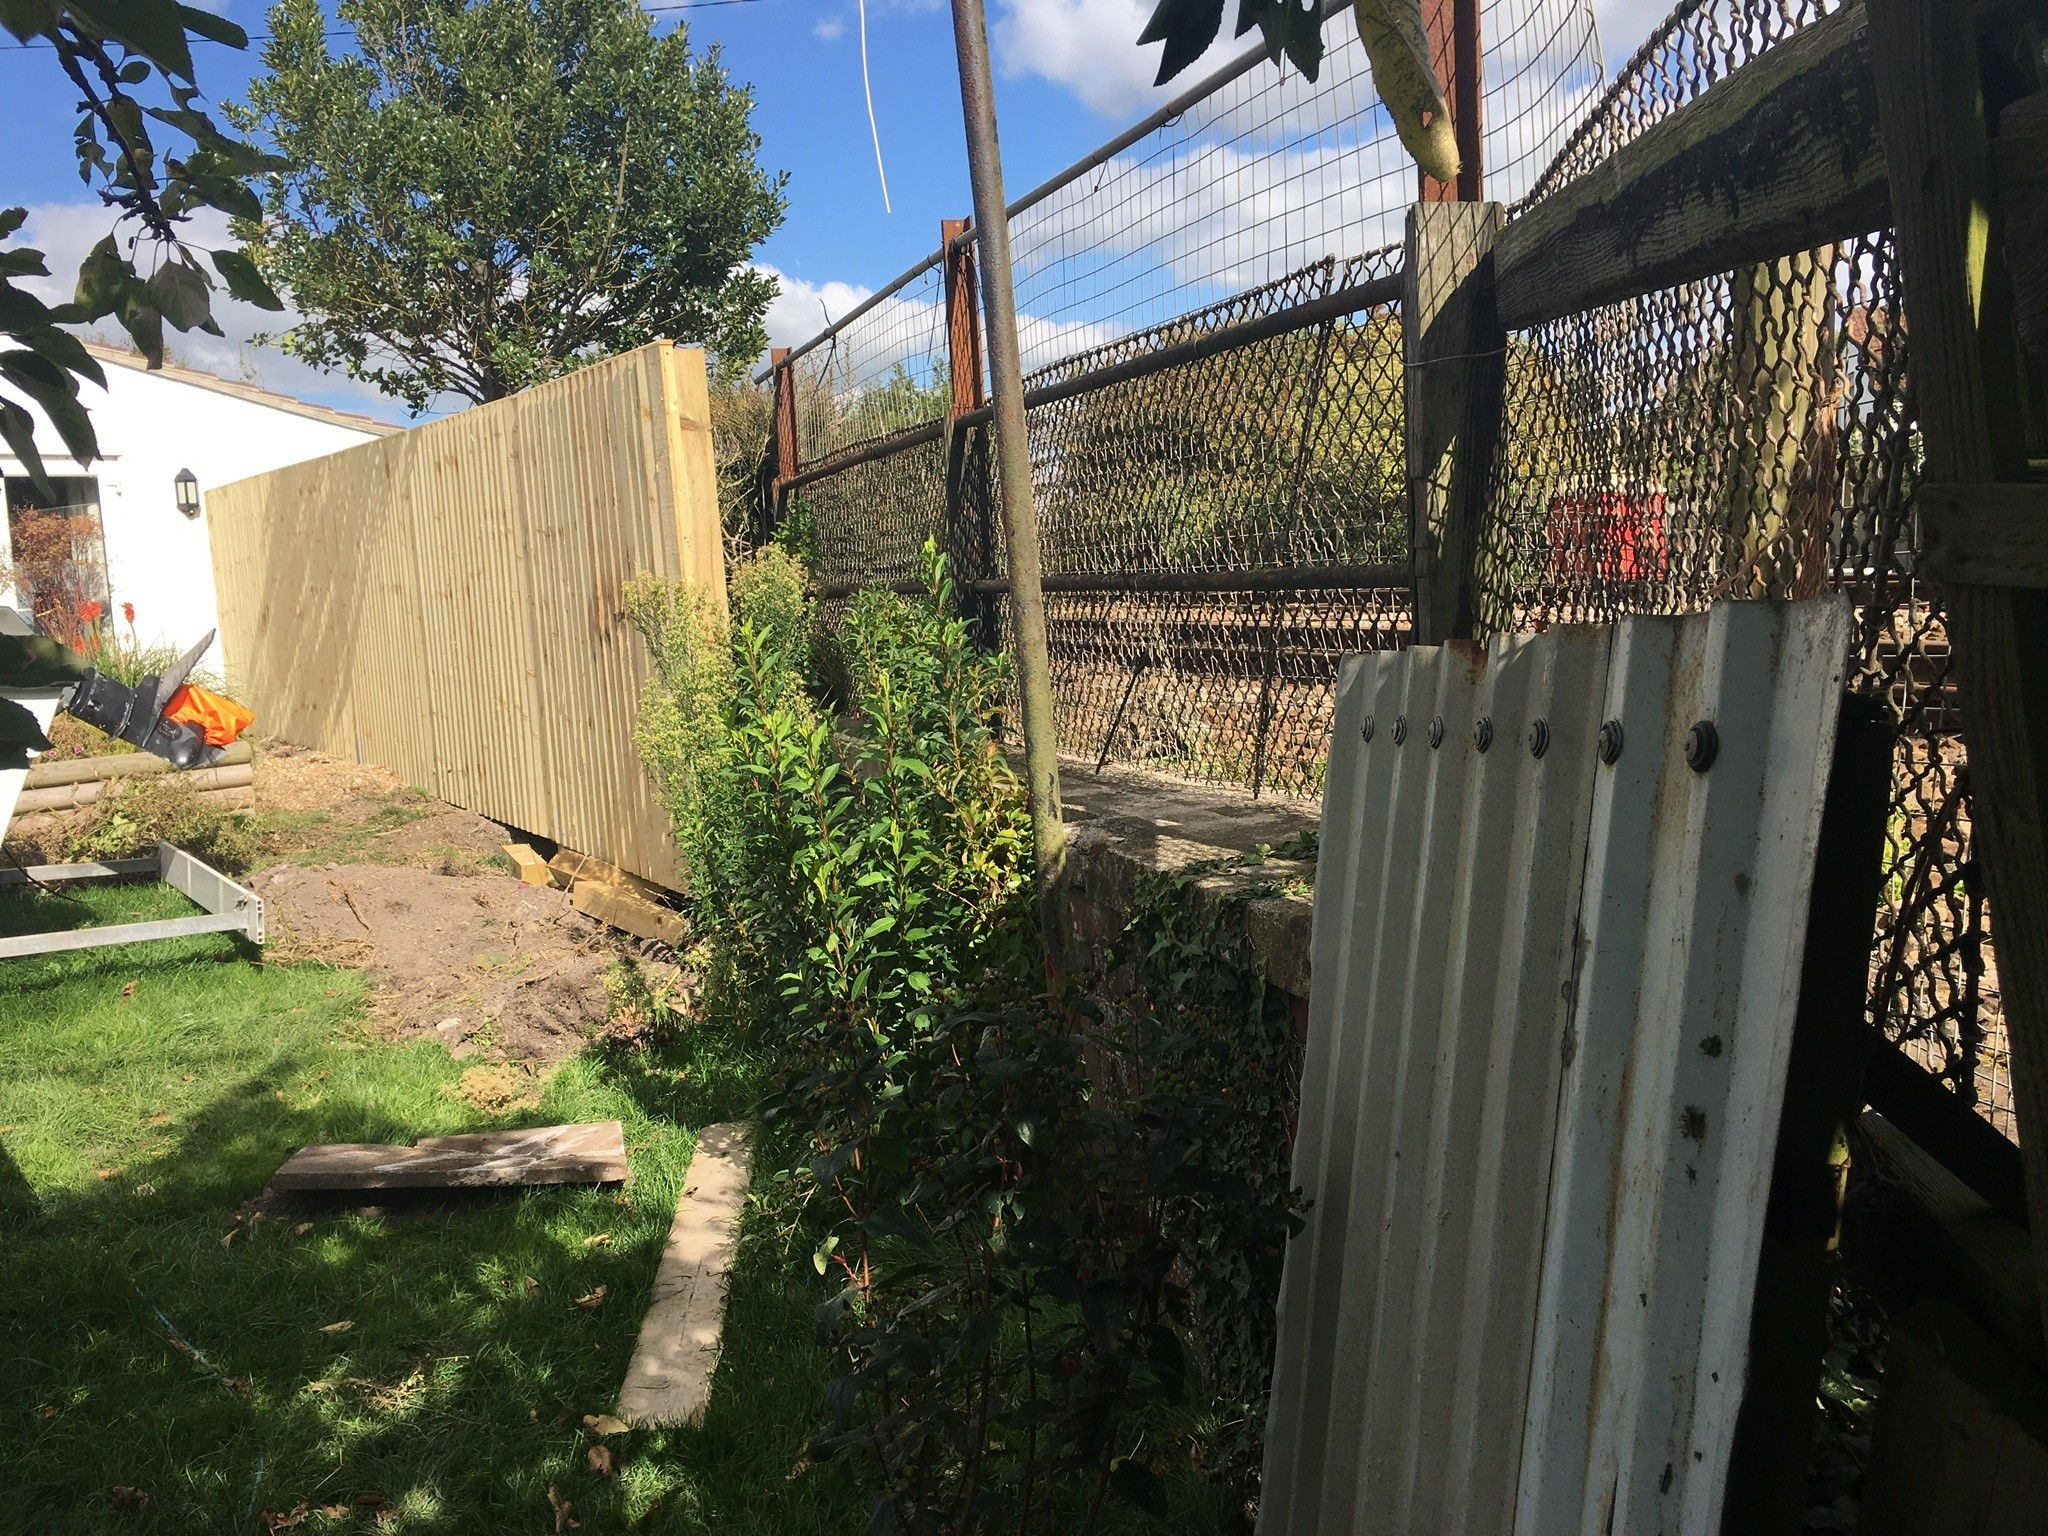 PROBLEMS: The temporary fence which separates Amanda Close's property from a busy railway line in West Huntspill